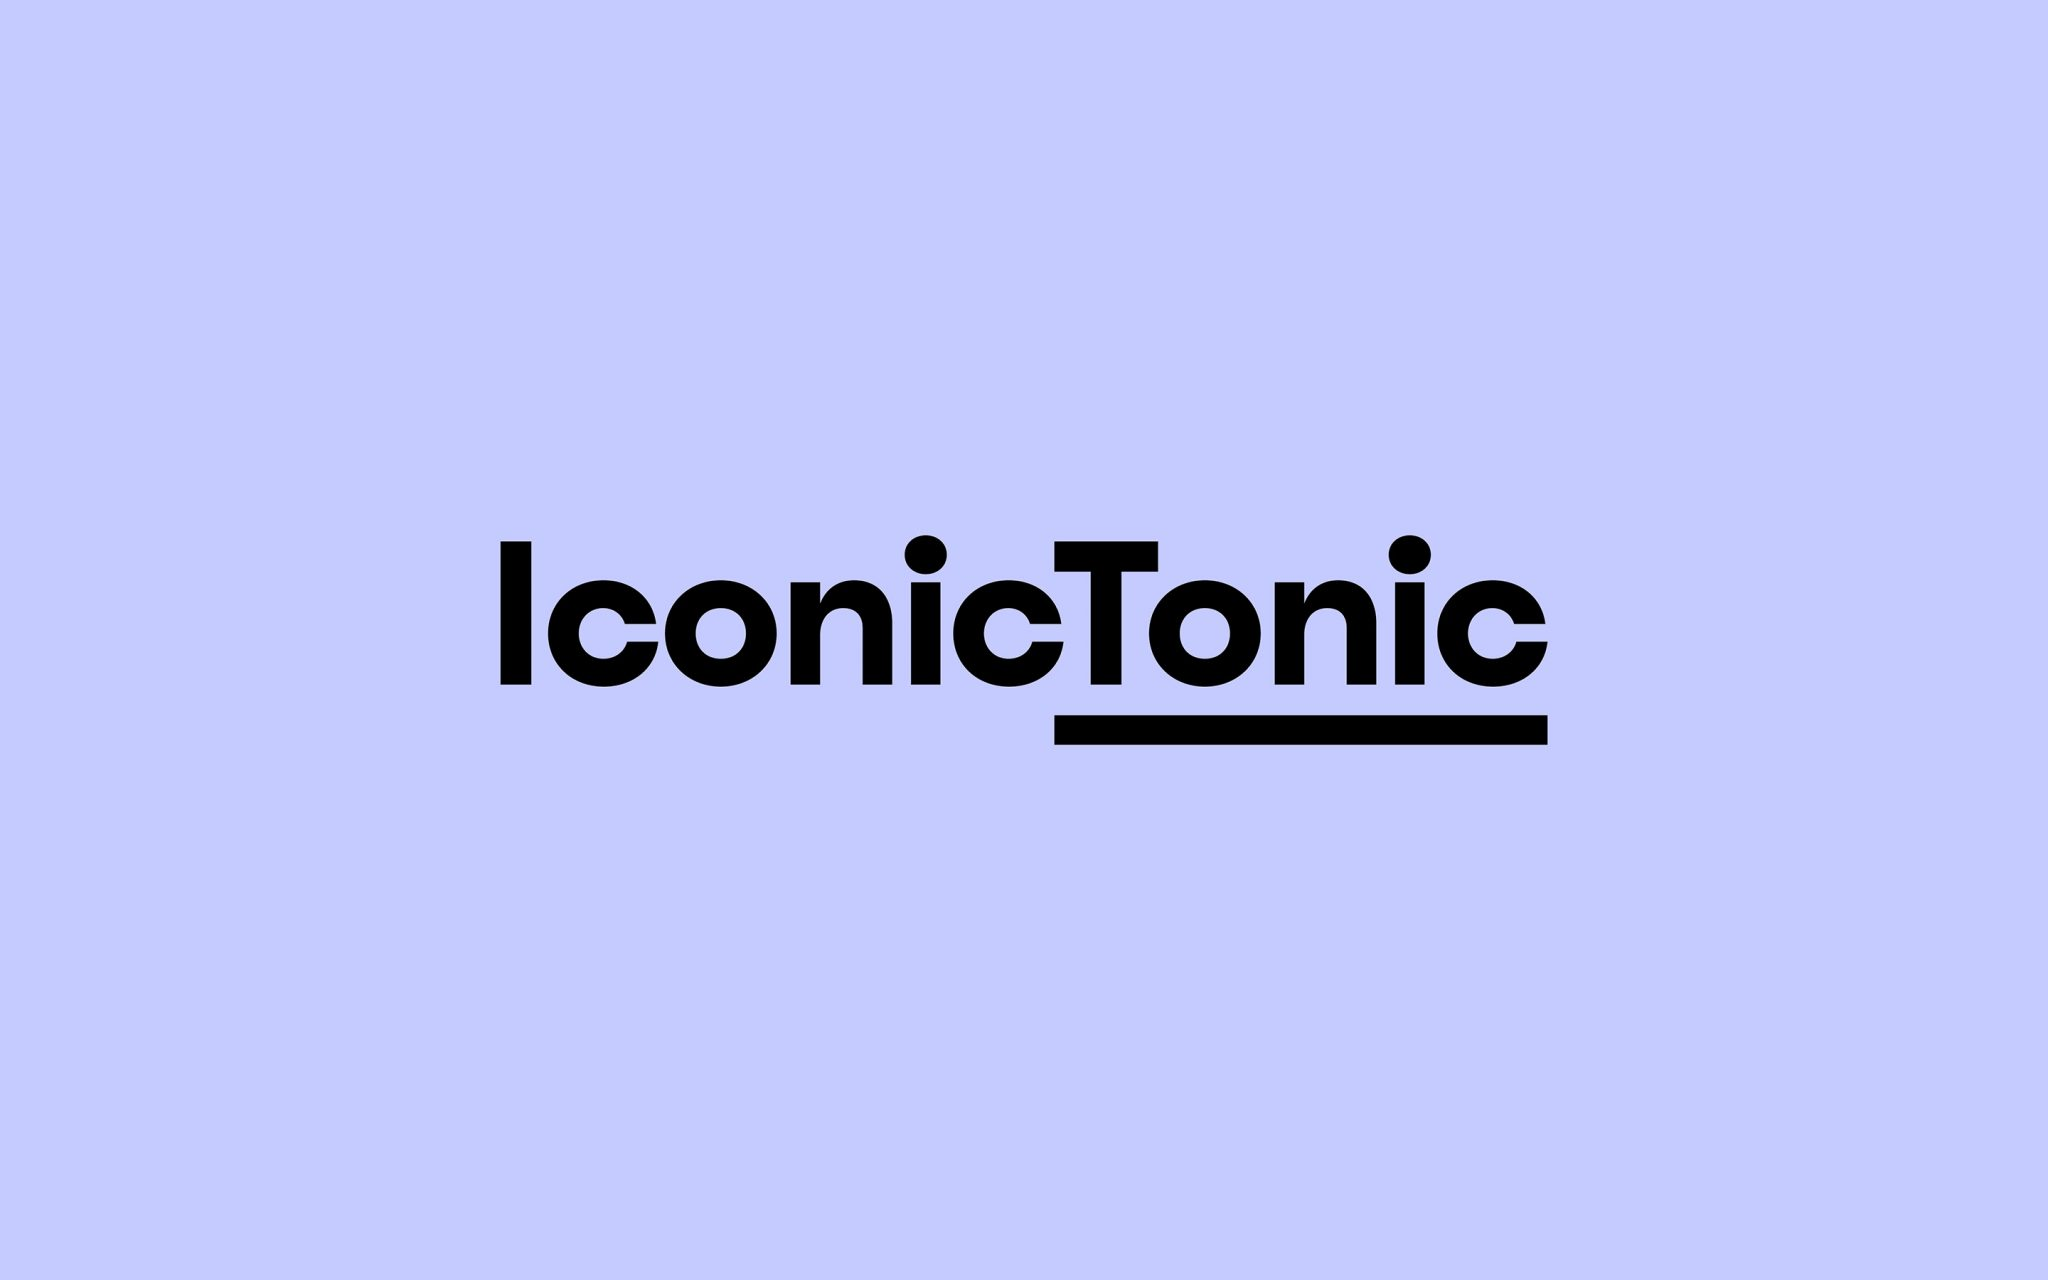 Iconic Tonic - Logotype